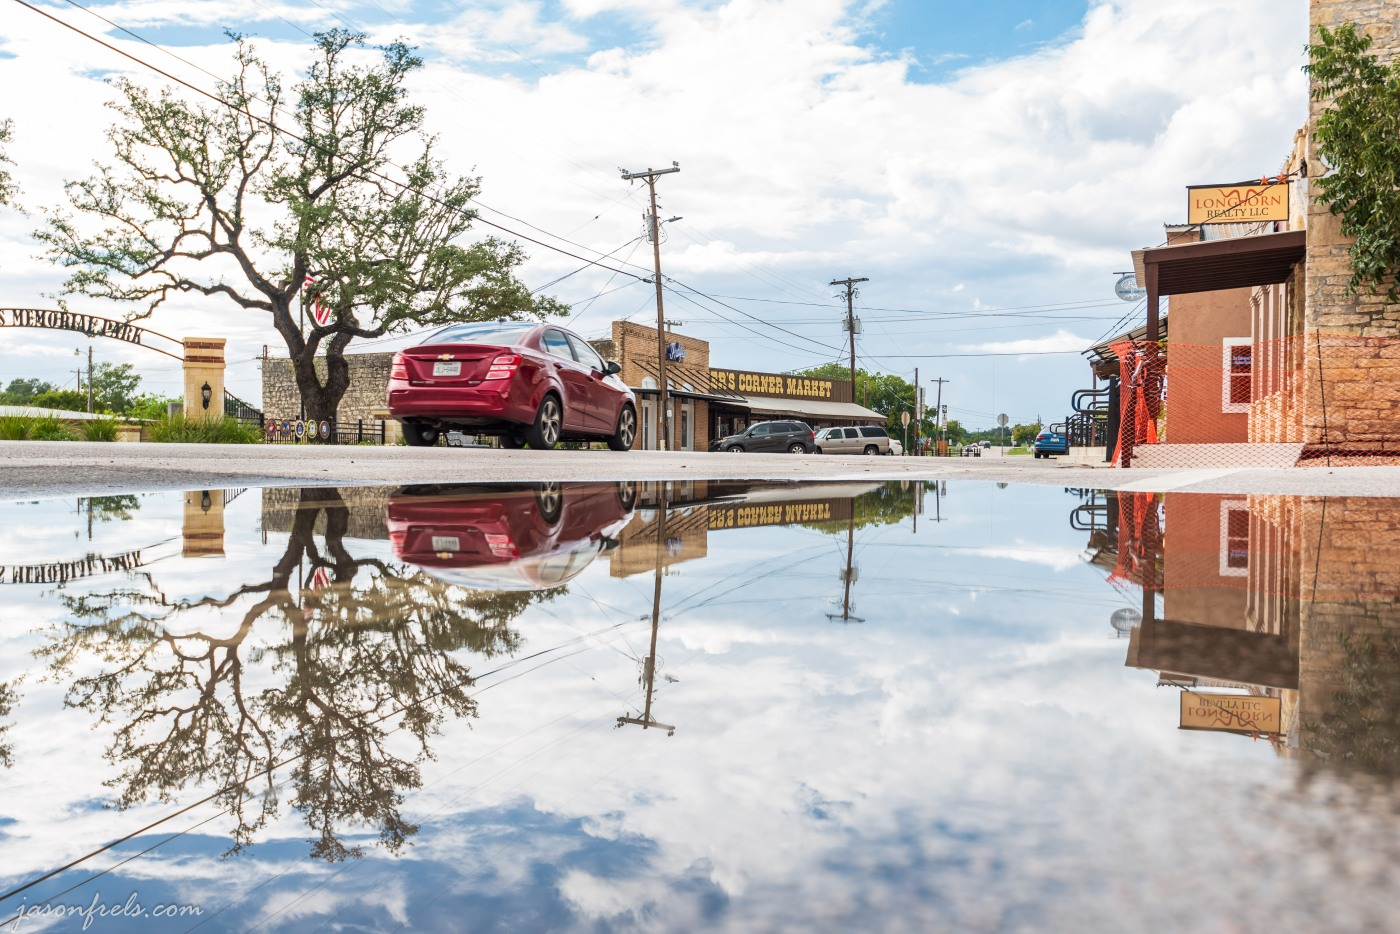 Reflections in a rain puddle in Liberty Hill Texas